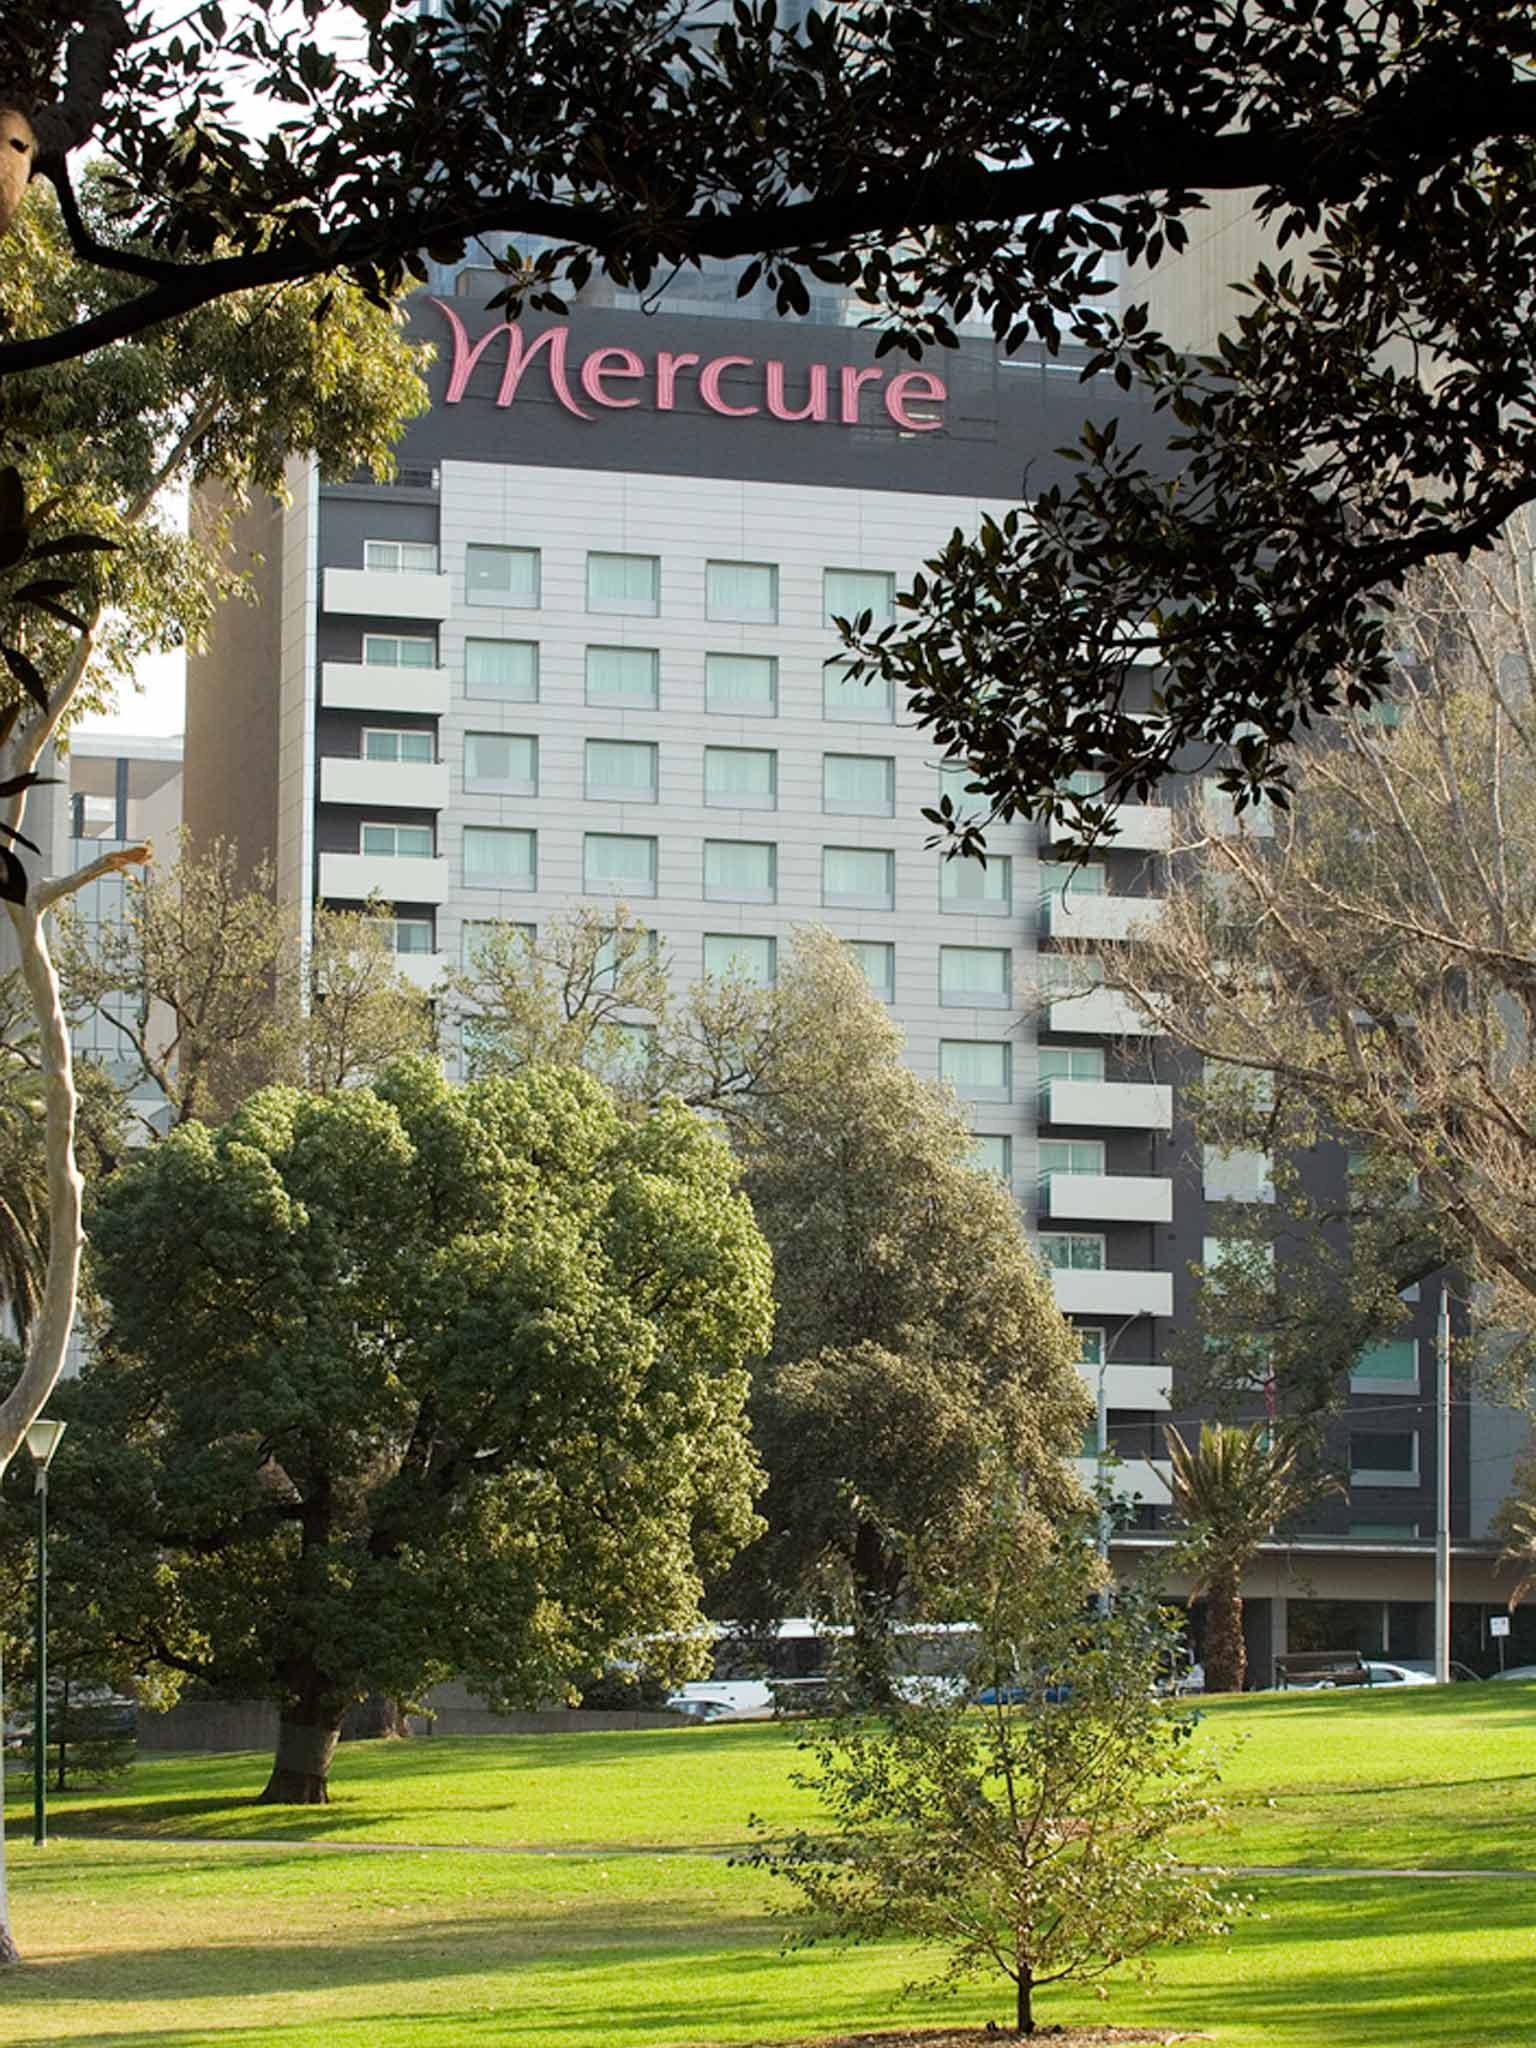 Mercure Hotel Melbourne Instalaciones recreativas